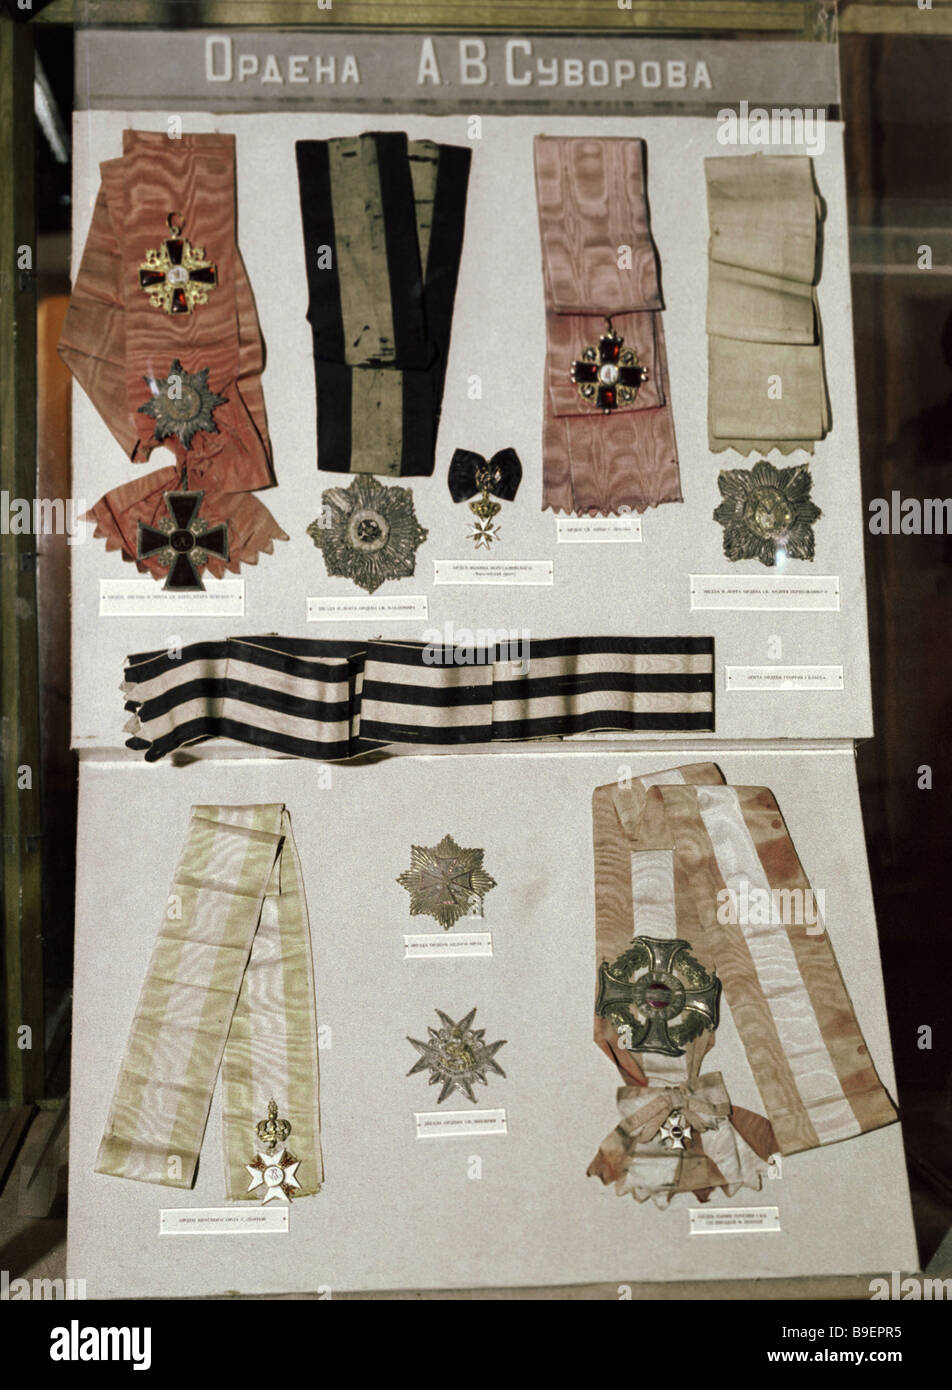 These Orders of Suvorov are preserved at the museum of the renowned Russian military leader St Petersburg - Stock Image